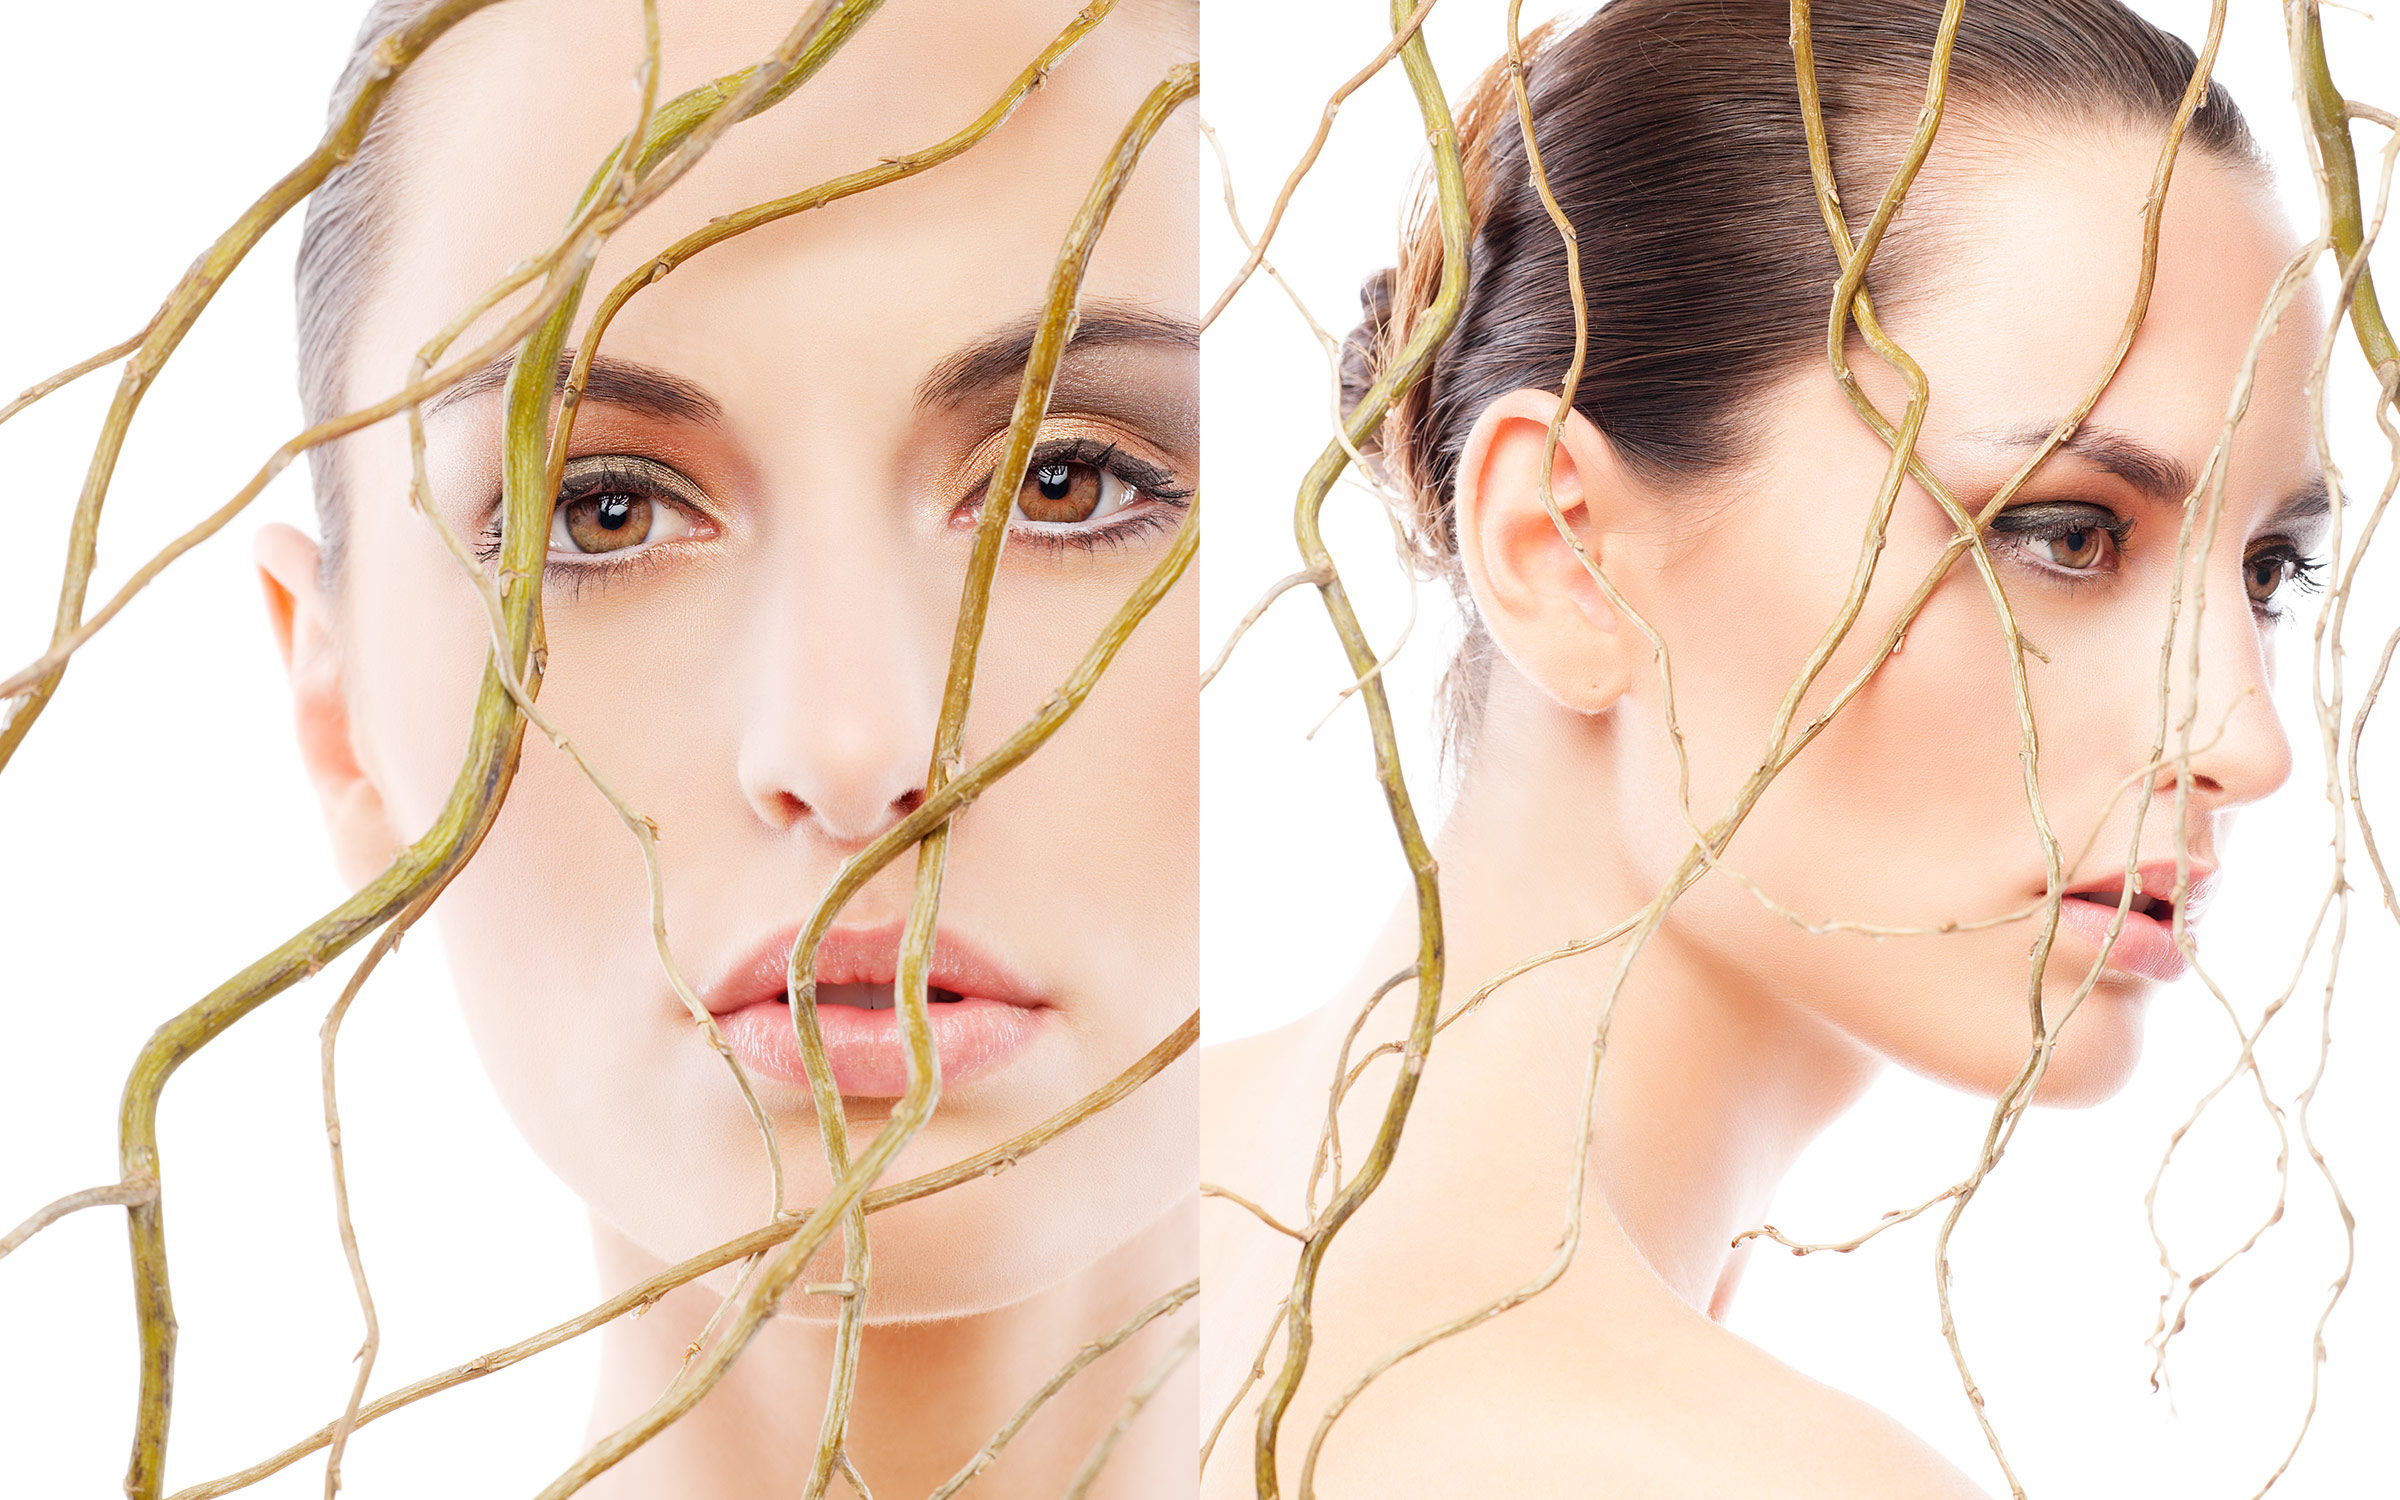 ZACHARY GOULKO | Beauty photography and retouching by Zachary Goulko